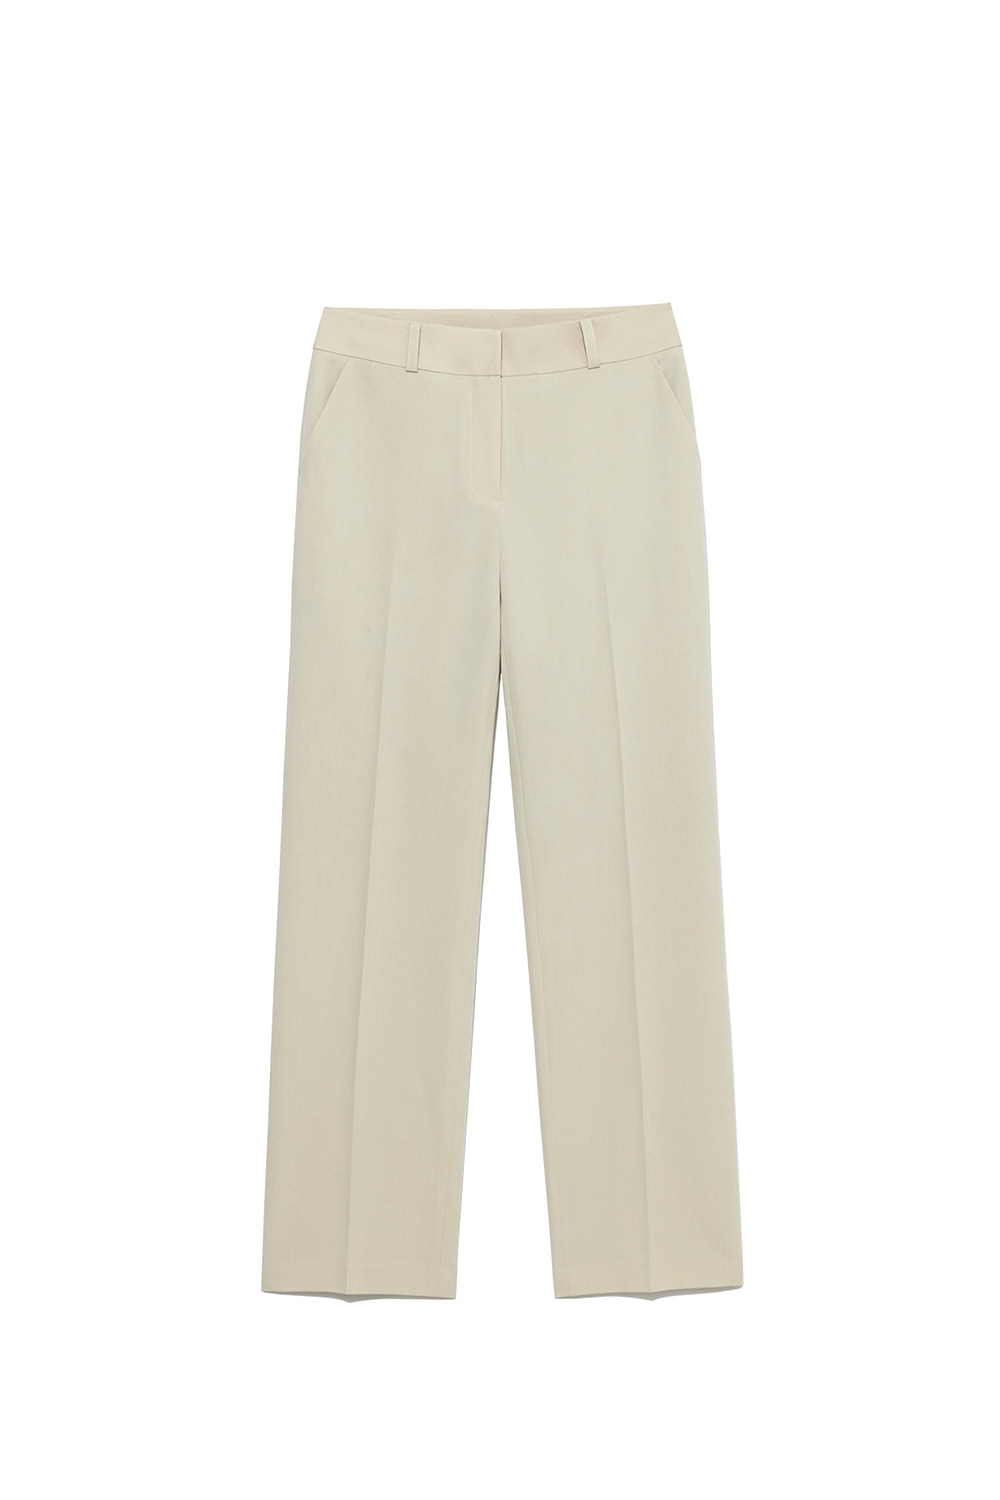 Long Slacks Women [Ivory]